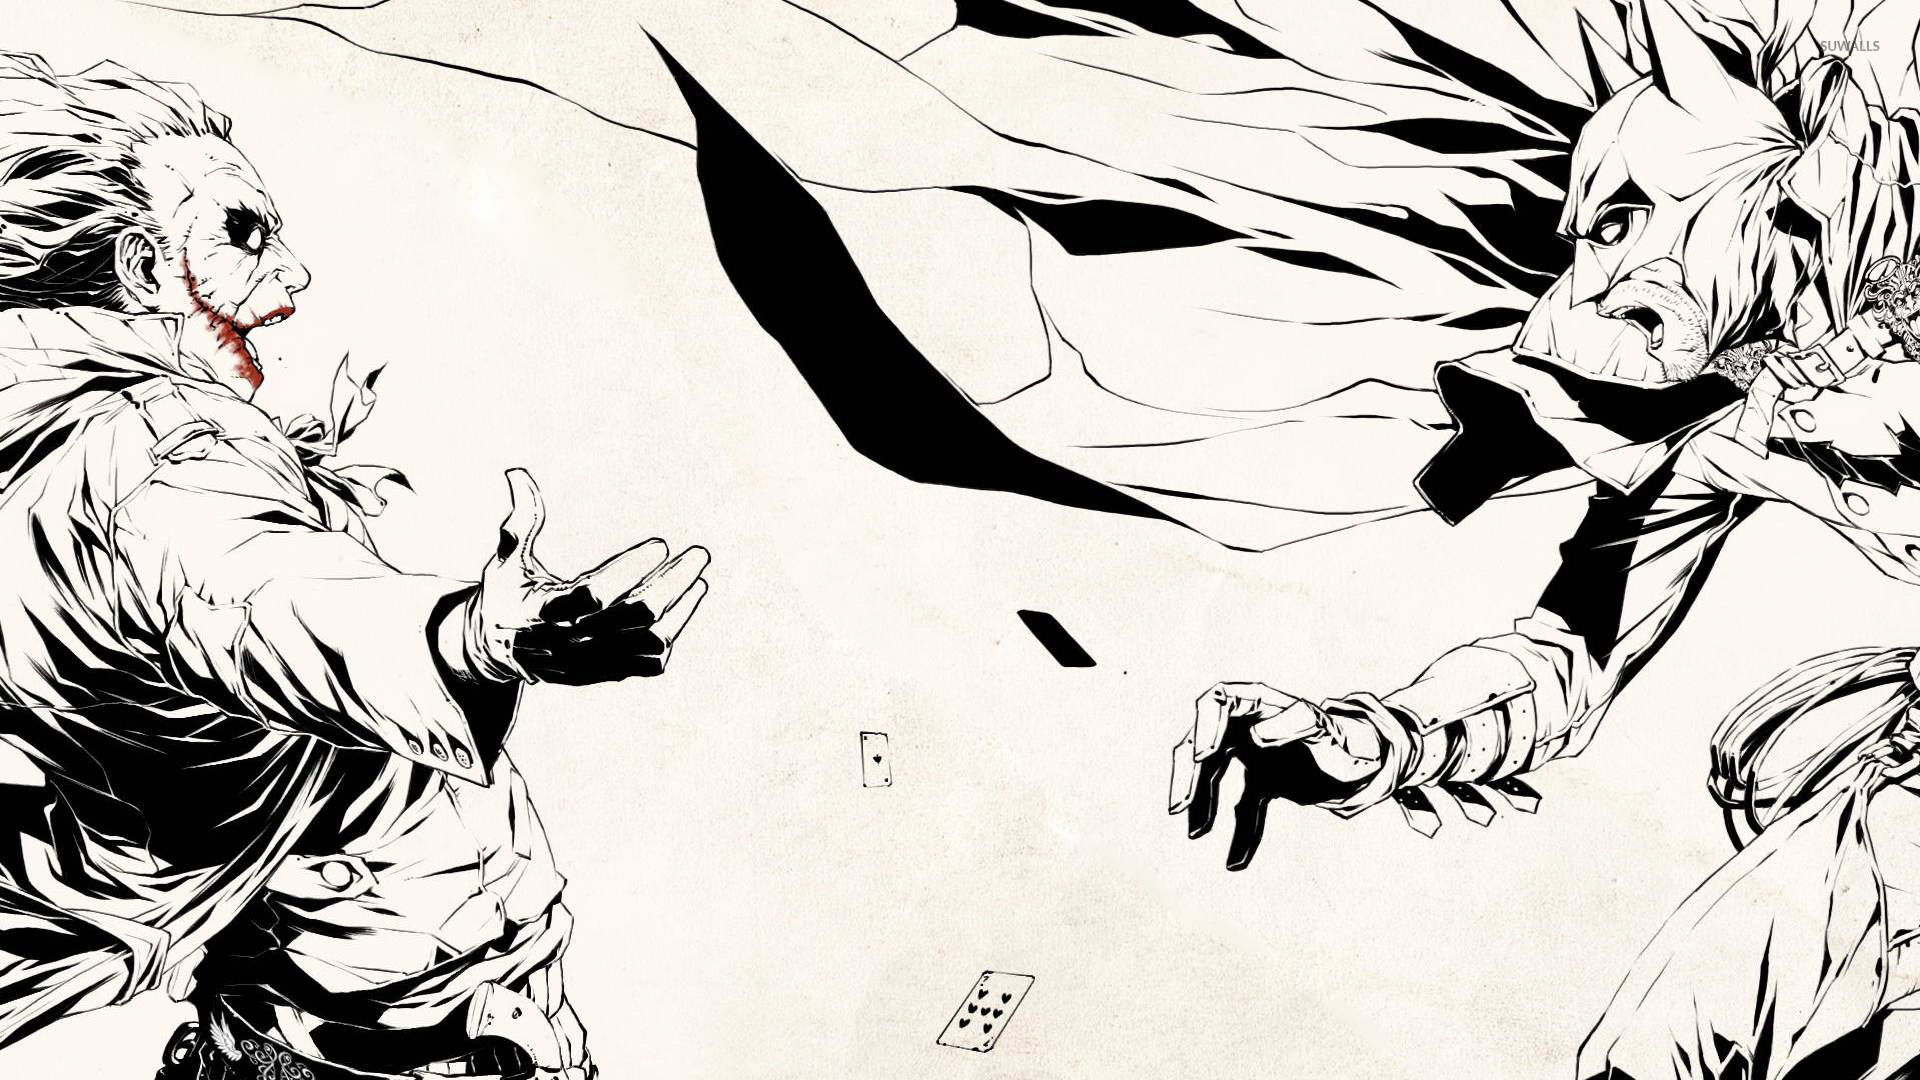 batman vs joker essay Batman vs spiderman comparison spiderman and batman are two of the most famous superheroes in comic book history while spiderman actually has supernatural powers.